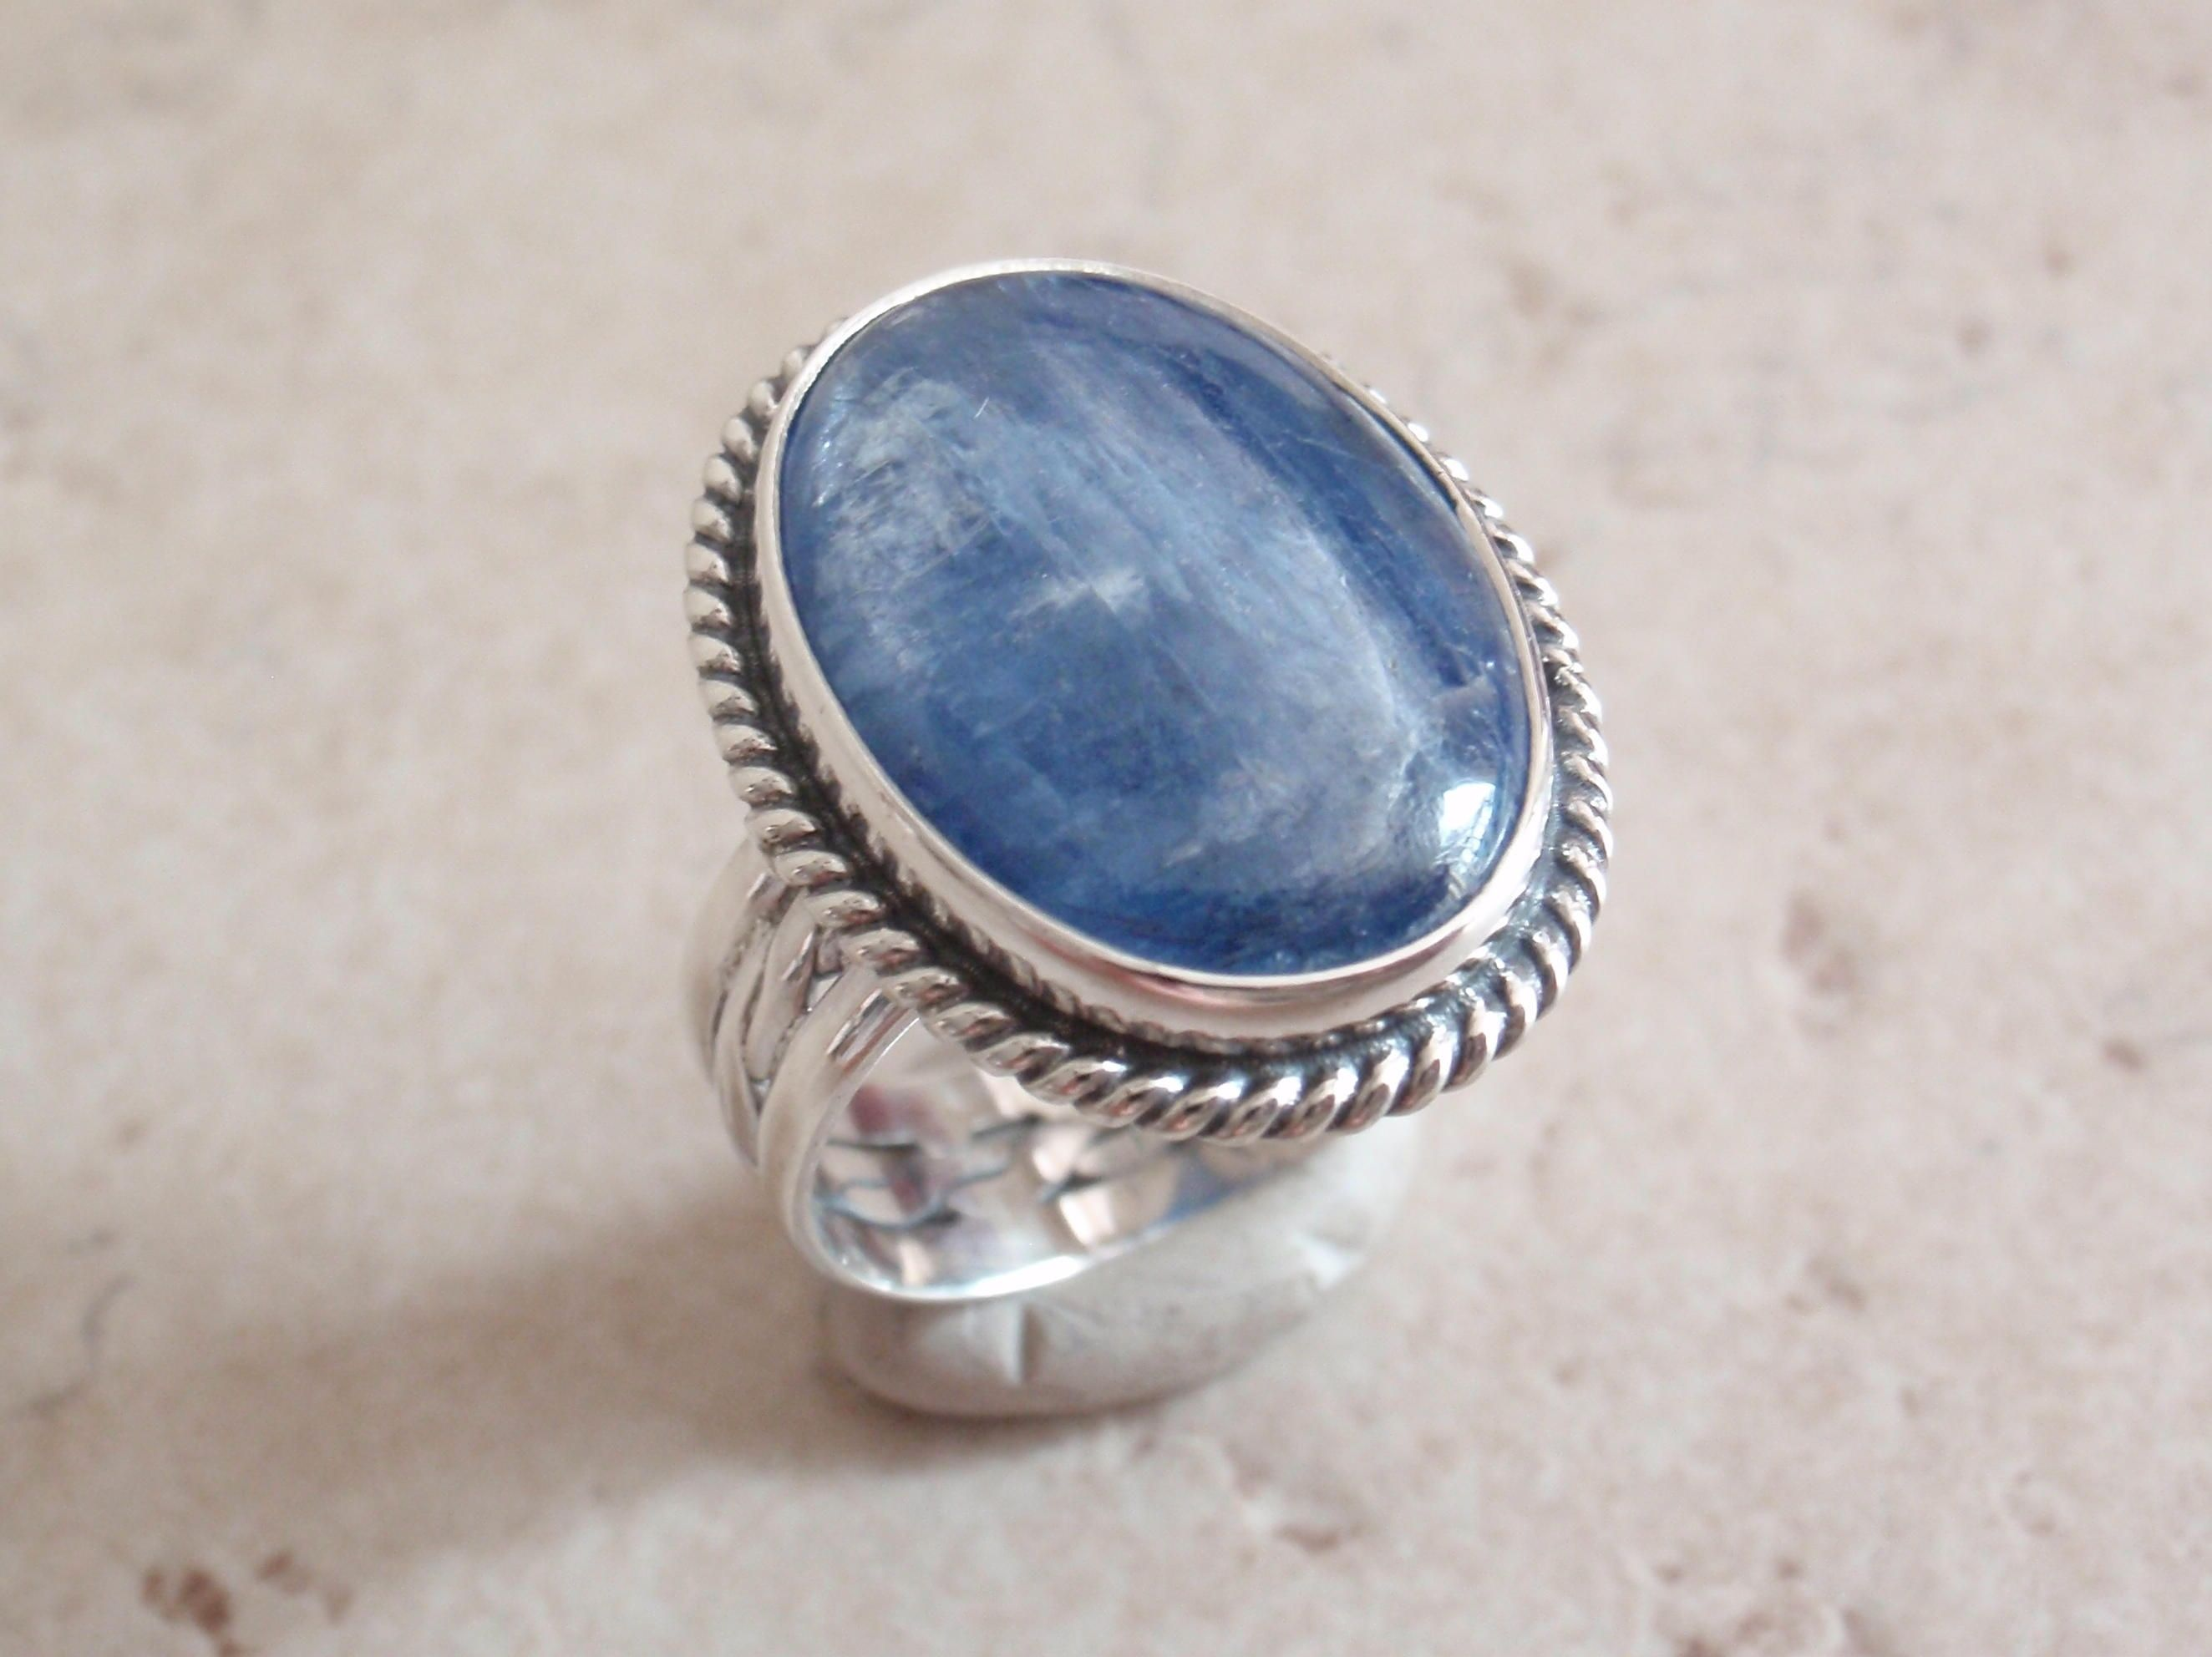 rings silver fullxfull square men for blue sterling boho listing ringblue ringsterling kyanite s il stone bzxe ring